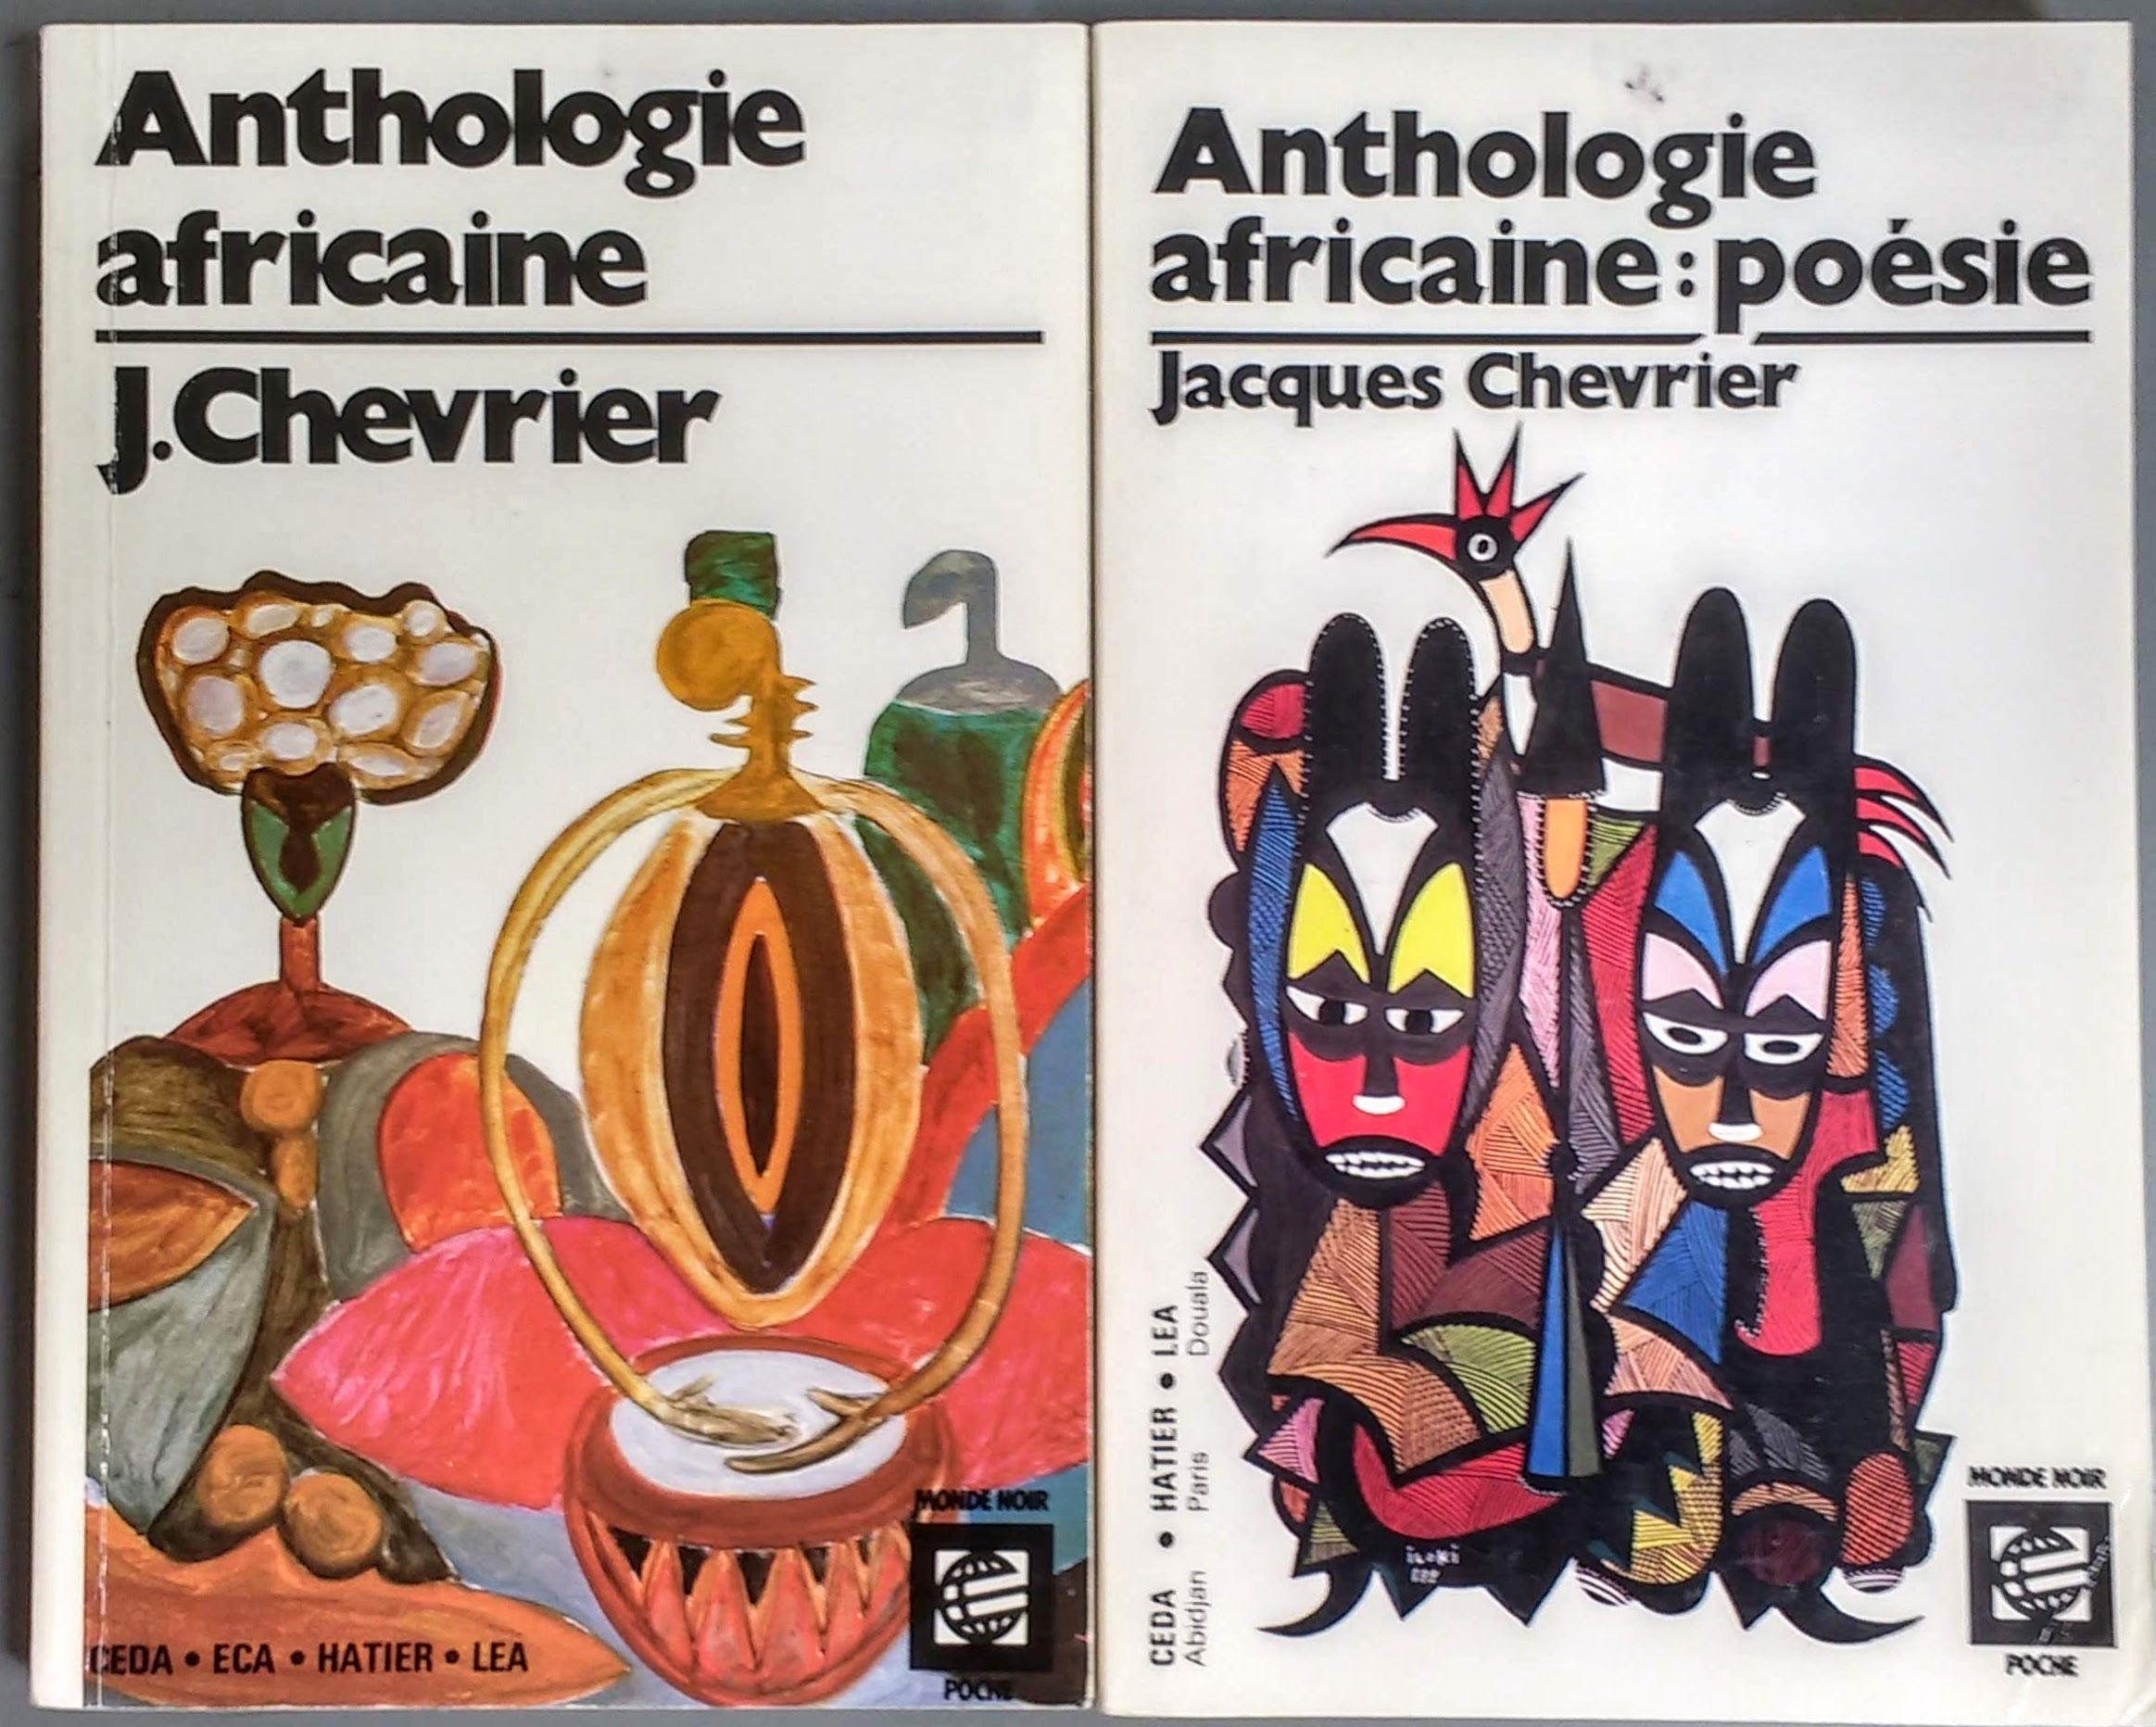 Anthologie africaine d'expression franc?aise (Collection Monde noir poche) (French Edition)